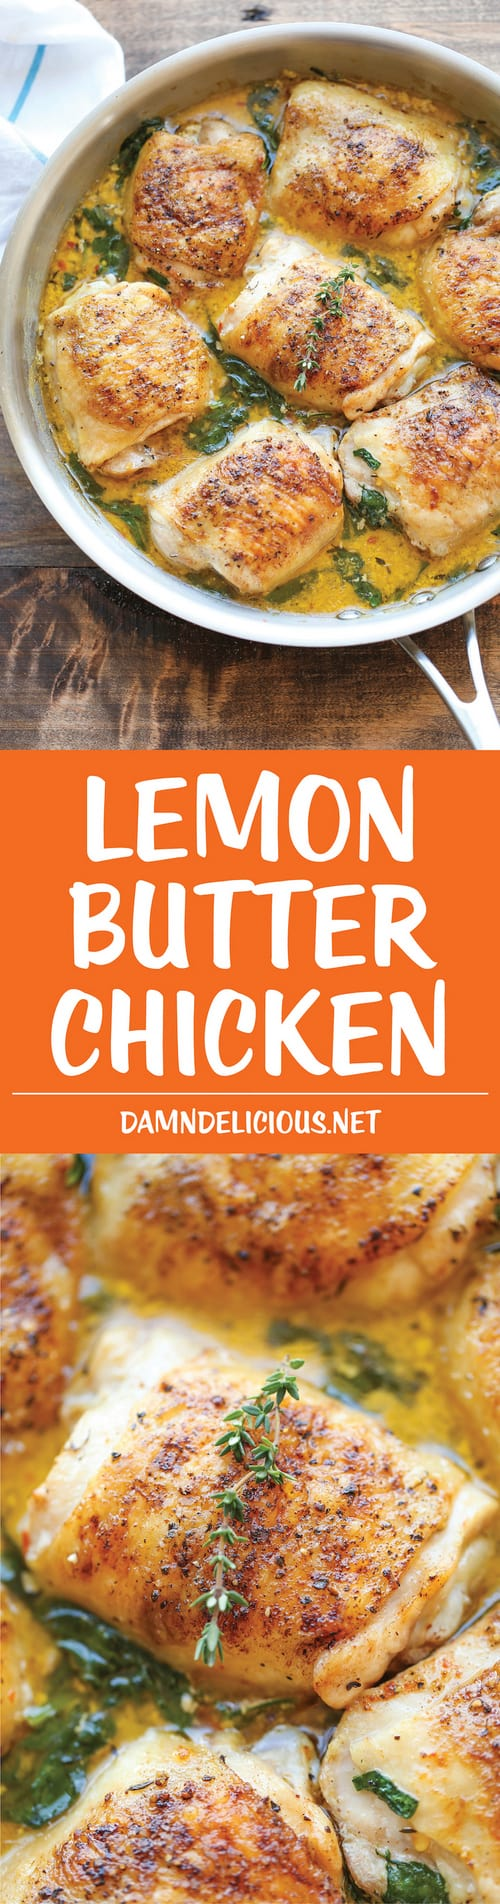 Keto Lemon Butter Chicken